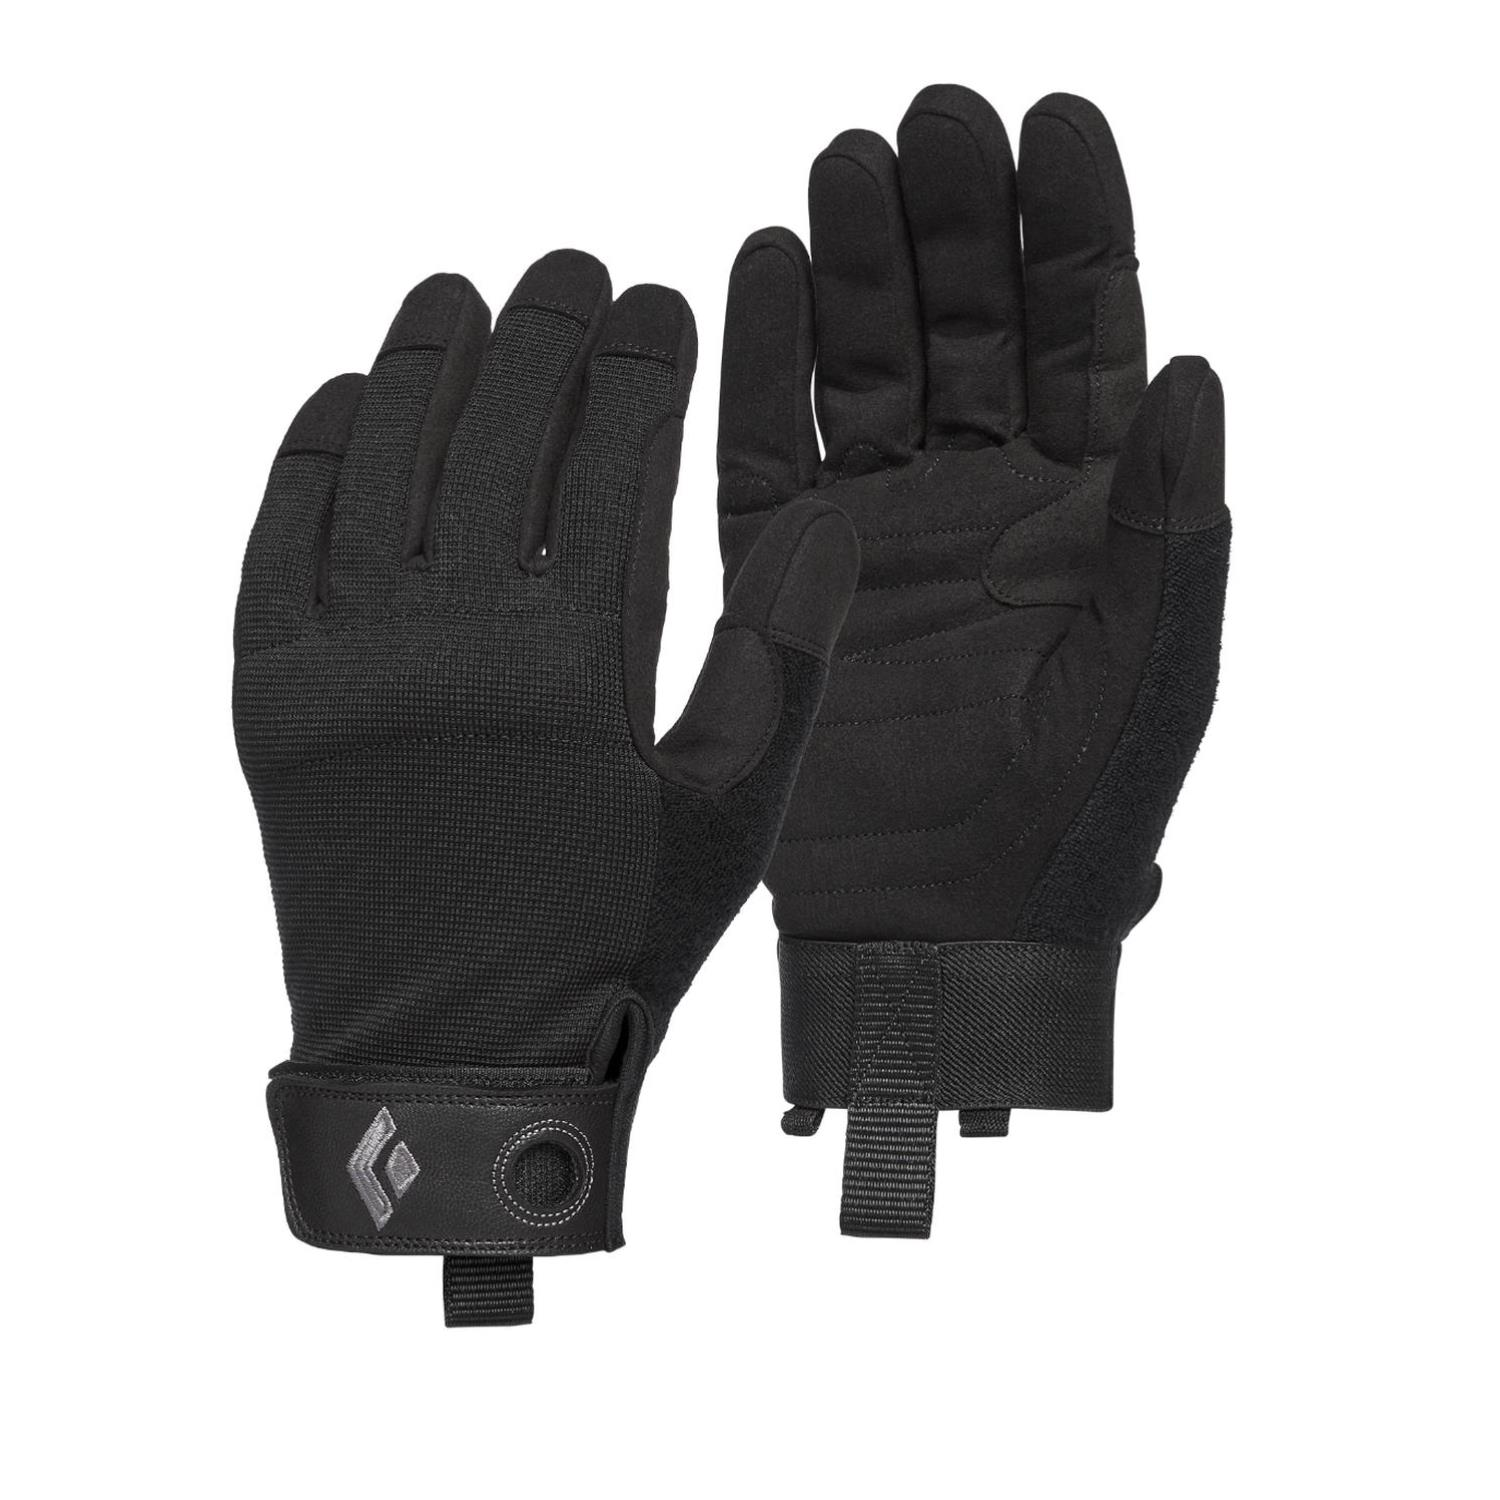 Black Diamond Crag Glove Kletterhandschuhe black von Black Diamond